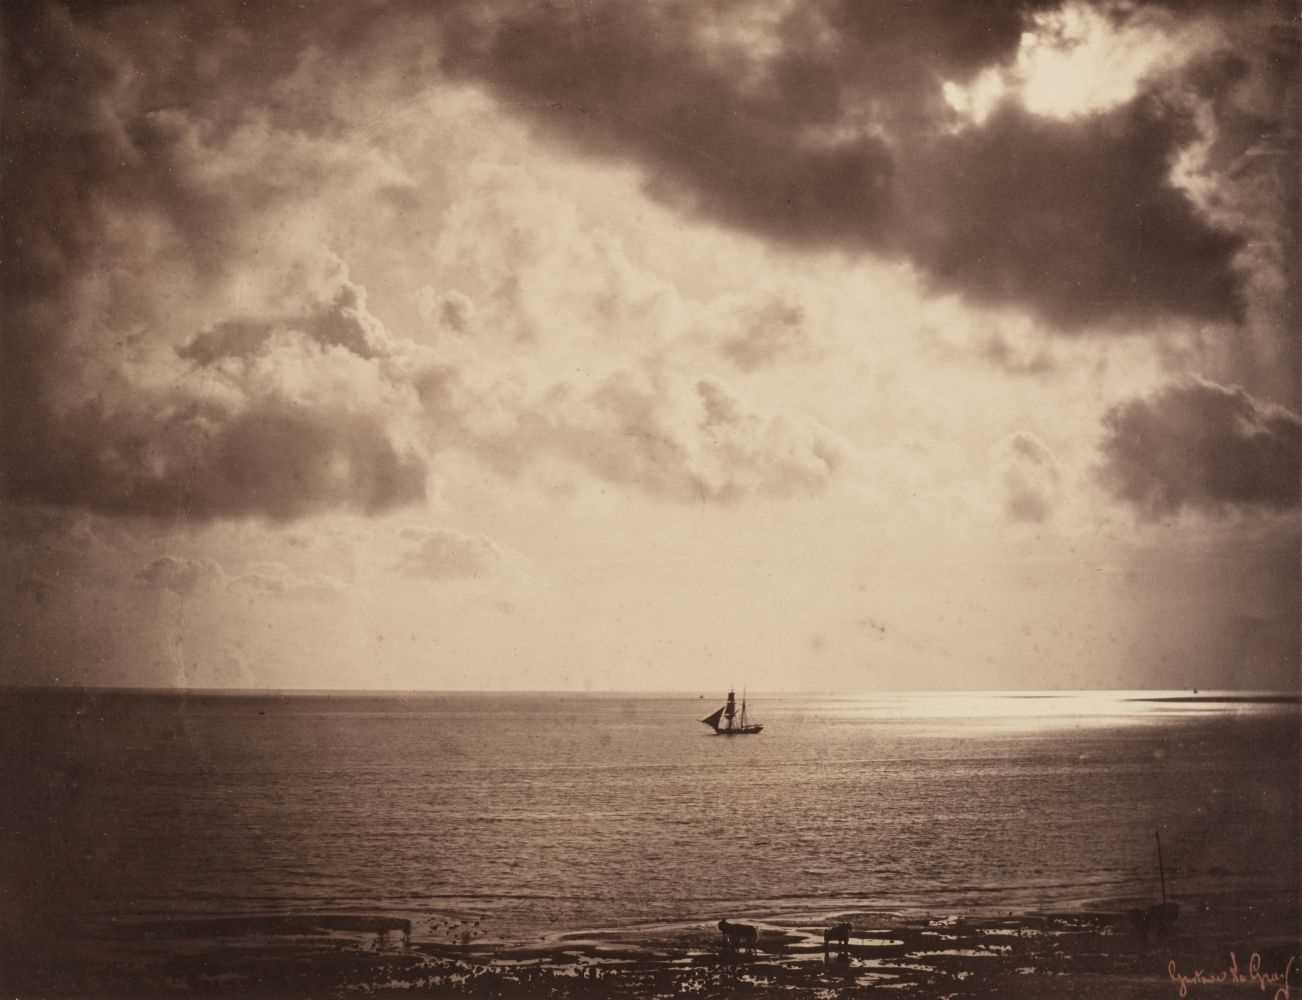 17 - Le Gray (Gustave, 1820-1884). Brick au Claire de Lune / Brig on the Water, 1856, albumen print